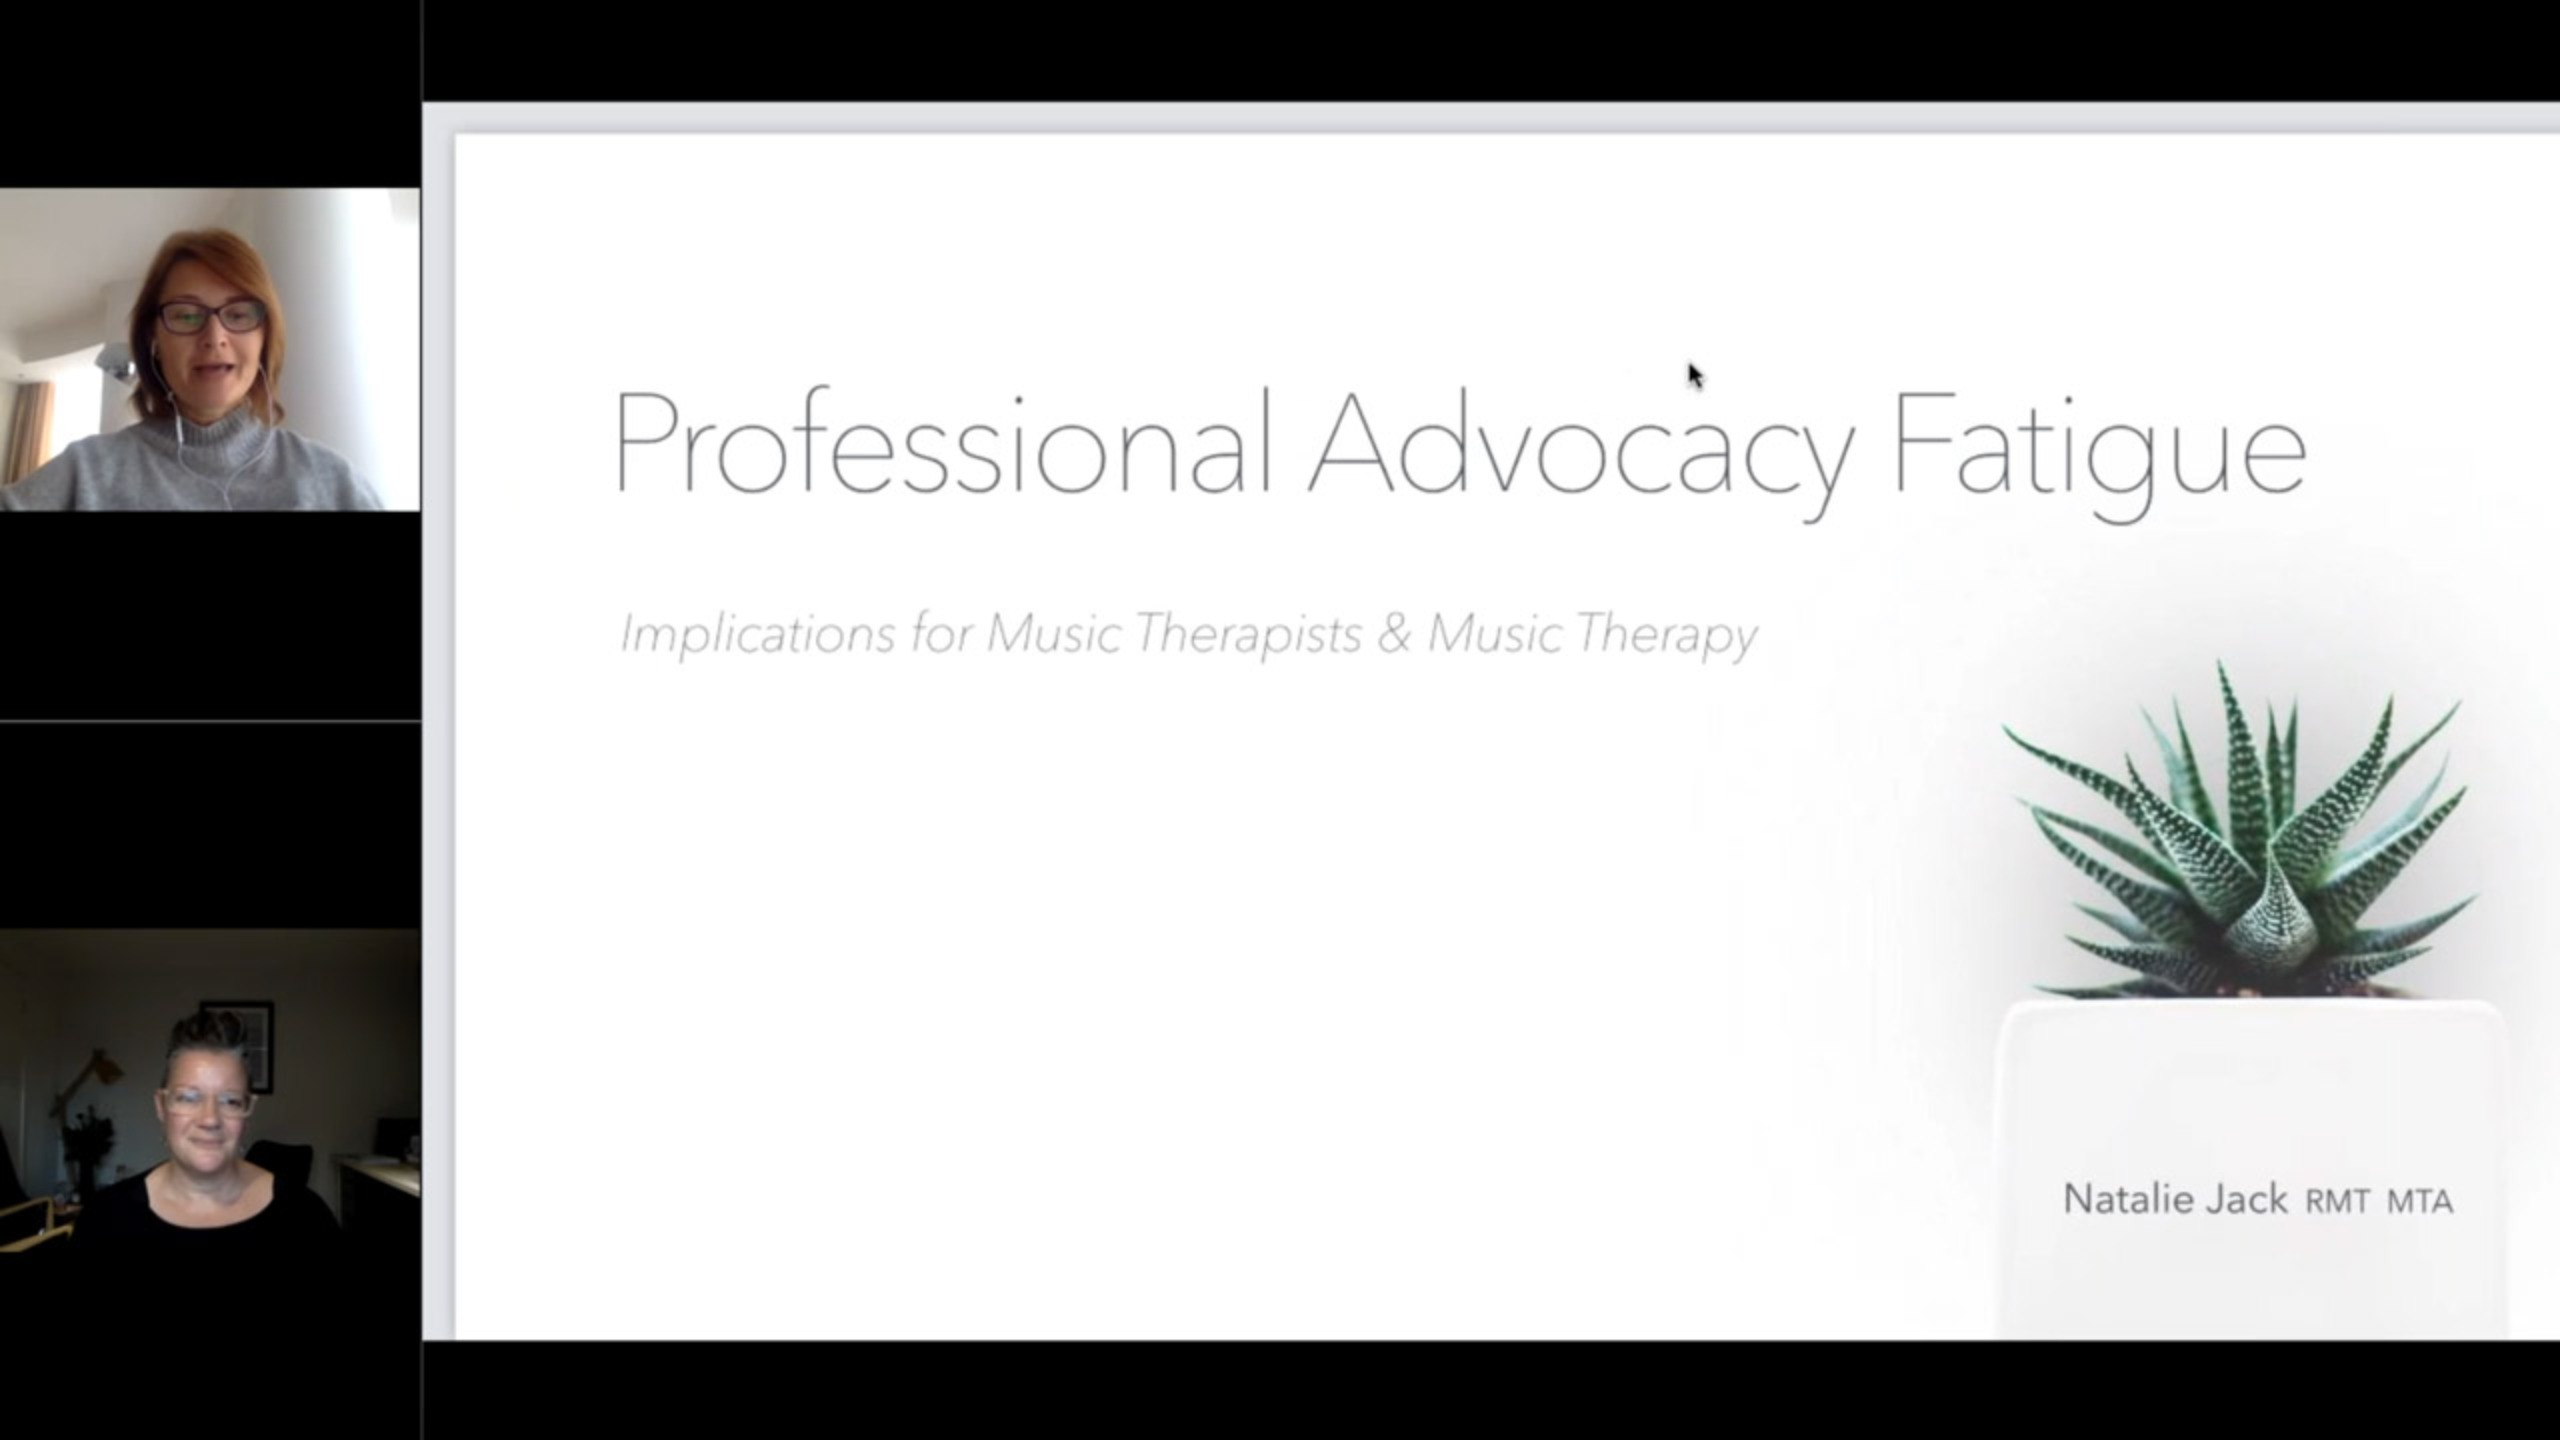 Professional Advocacy Fatigue: Implications for Music Therapists and Music Therapy